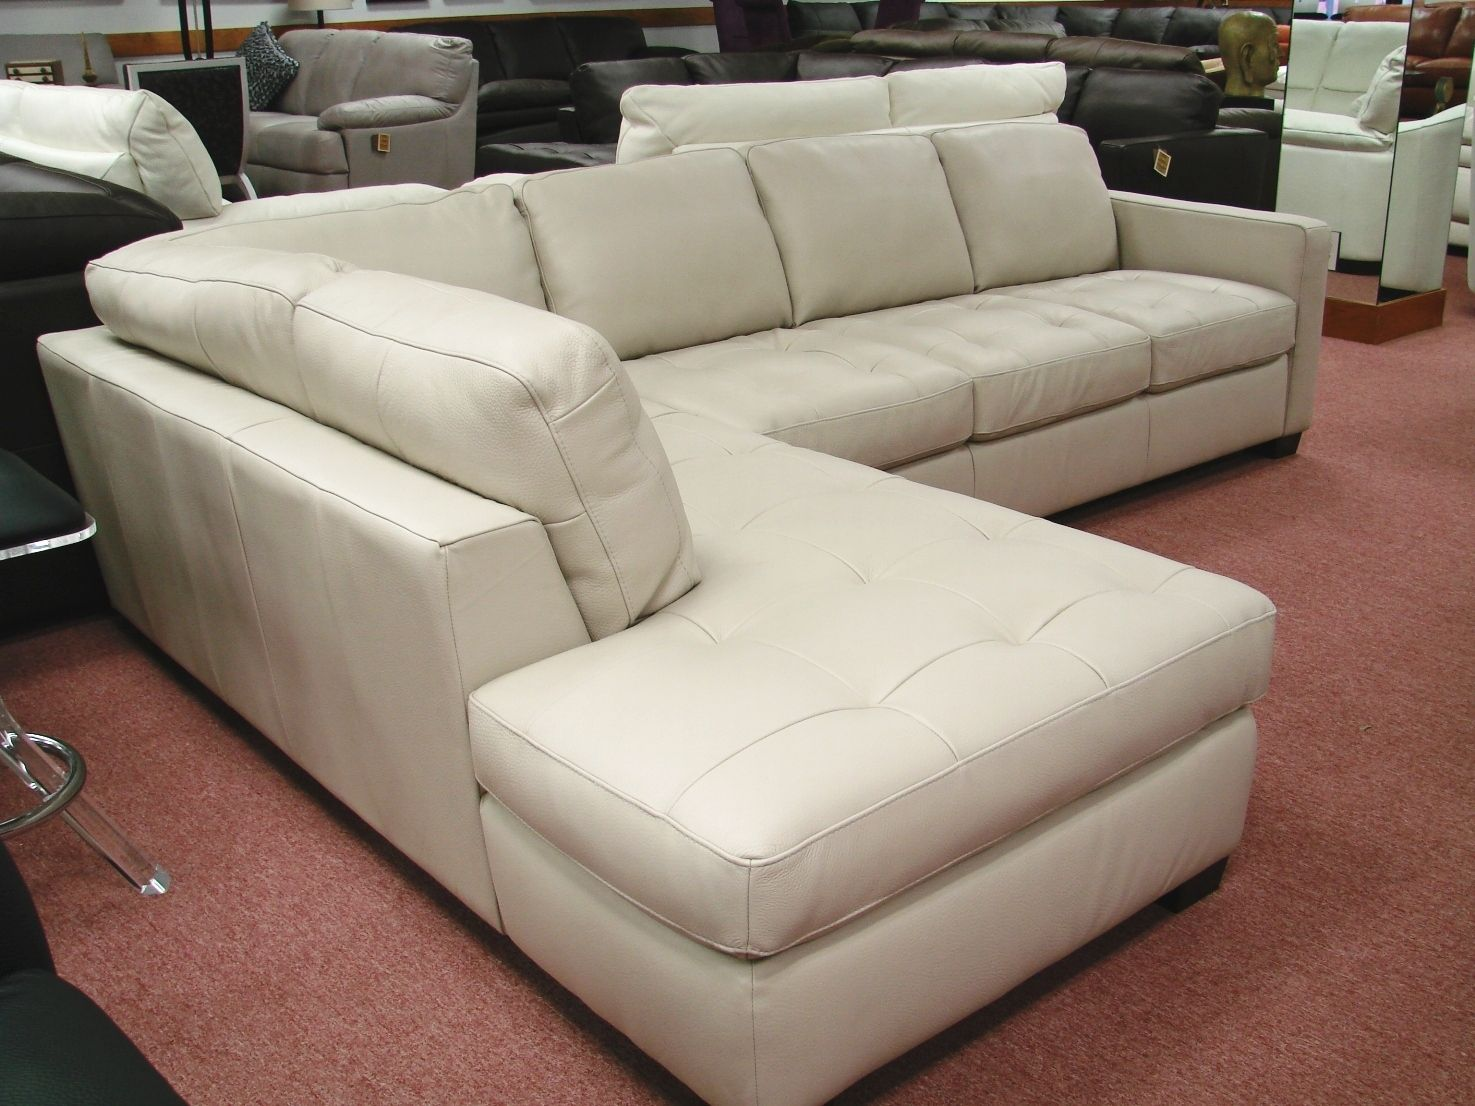 127 Reference Of White Furniture Sofa For Sale In 2020 White Leather Sofas White Leather Couch Sofa Sale